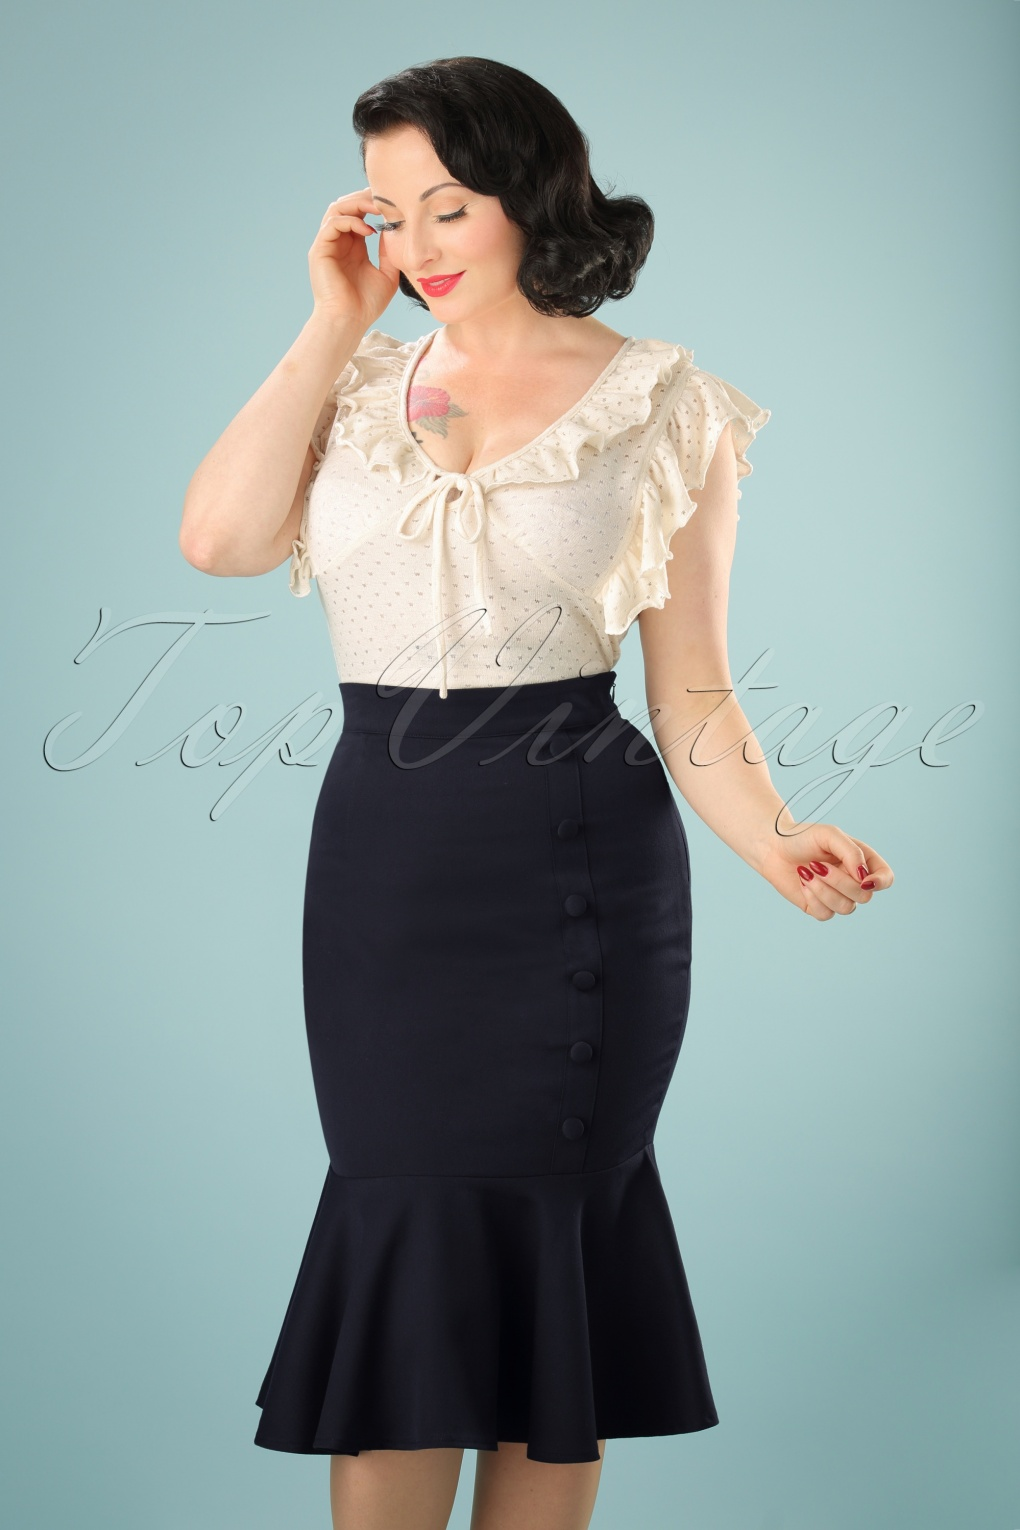 Tea Length 1930s Style Skirts for Sale 50s History Repeats Pencil Skirt in Navy £28.05 AT vintagedancer.com